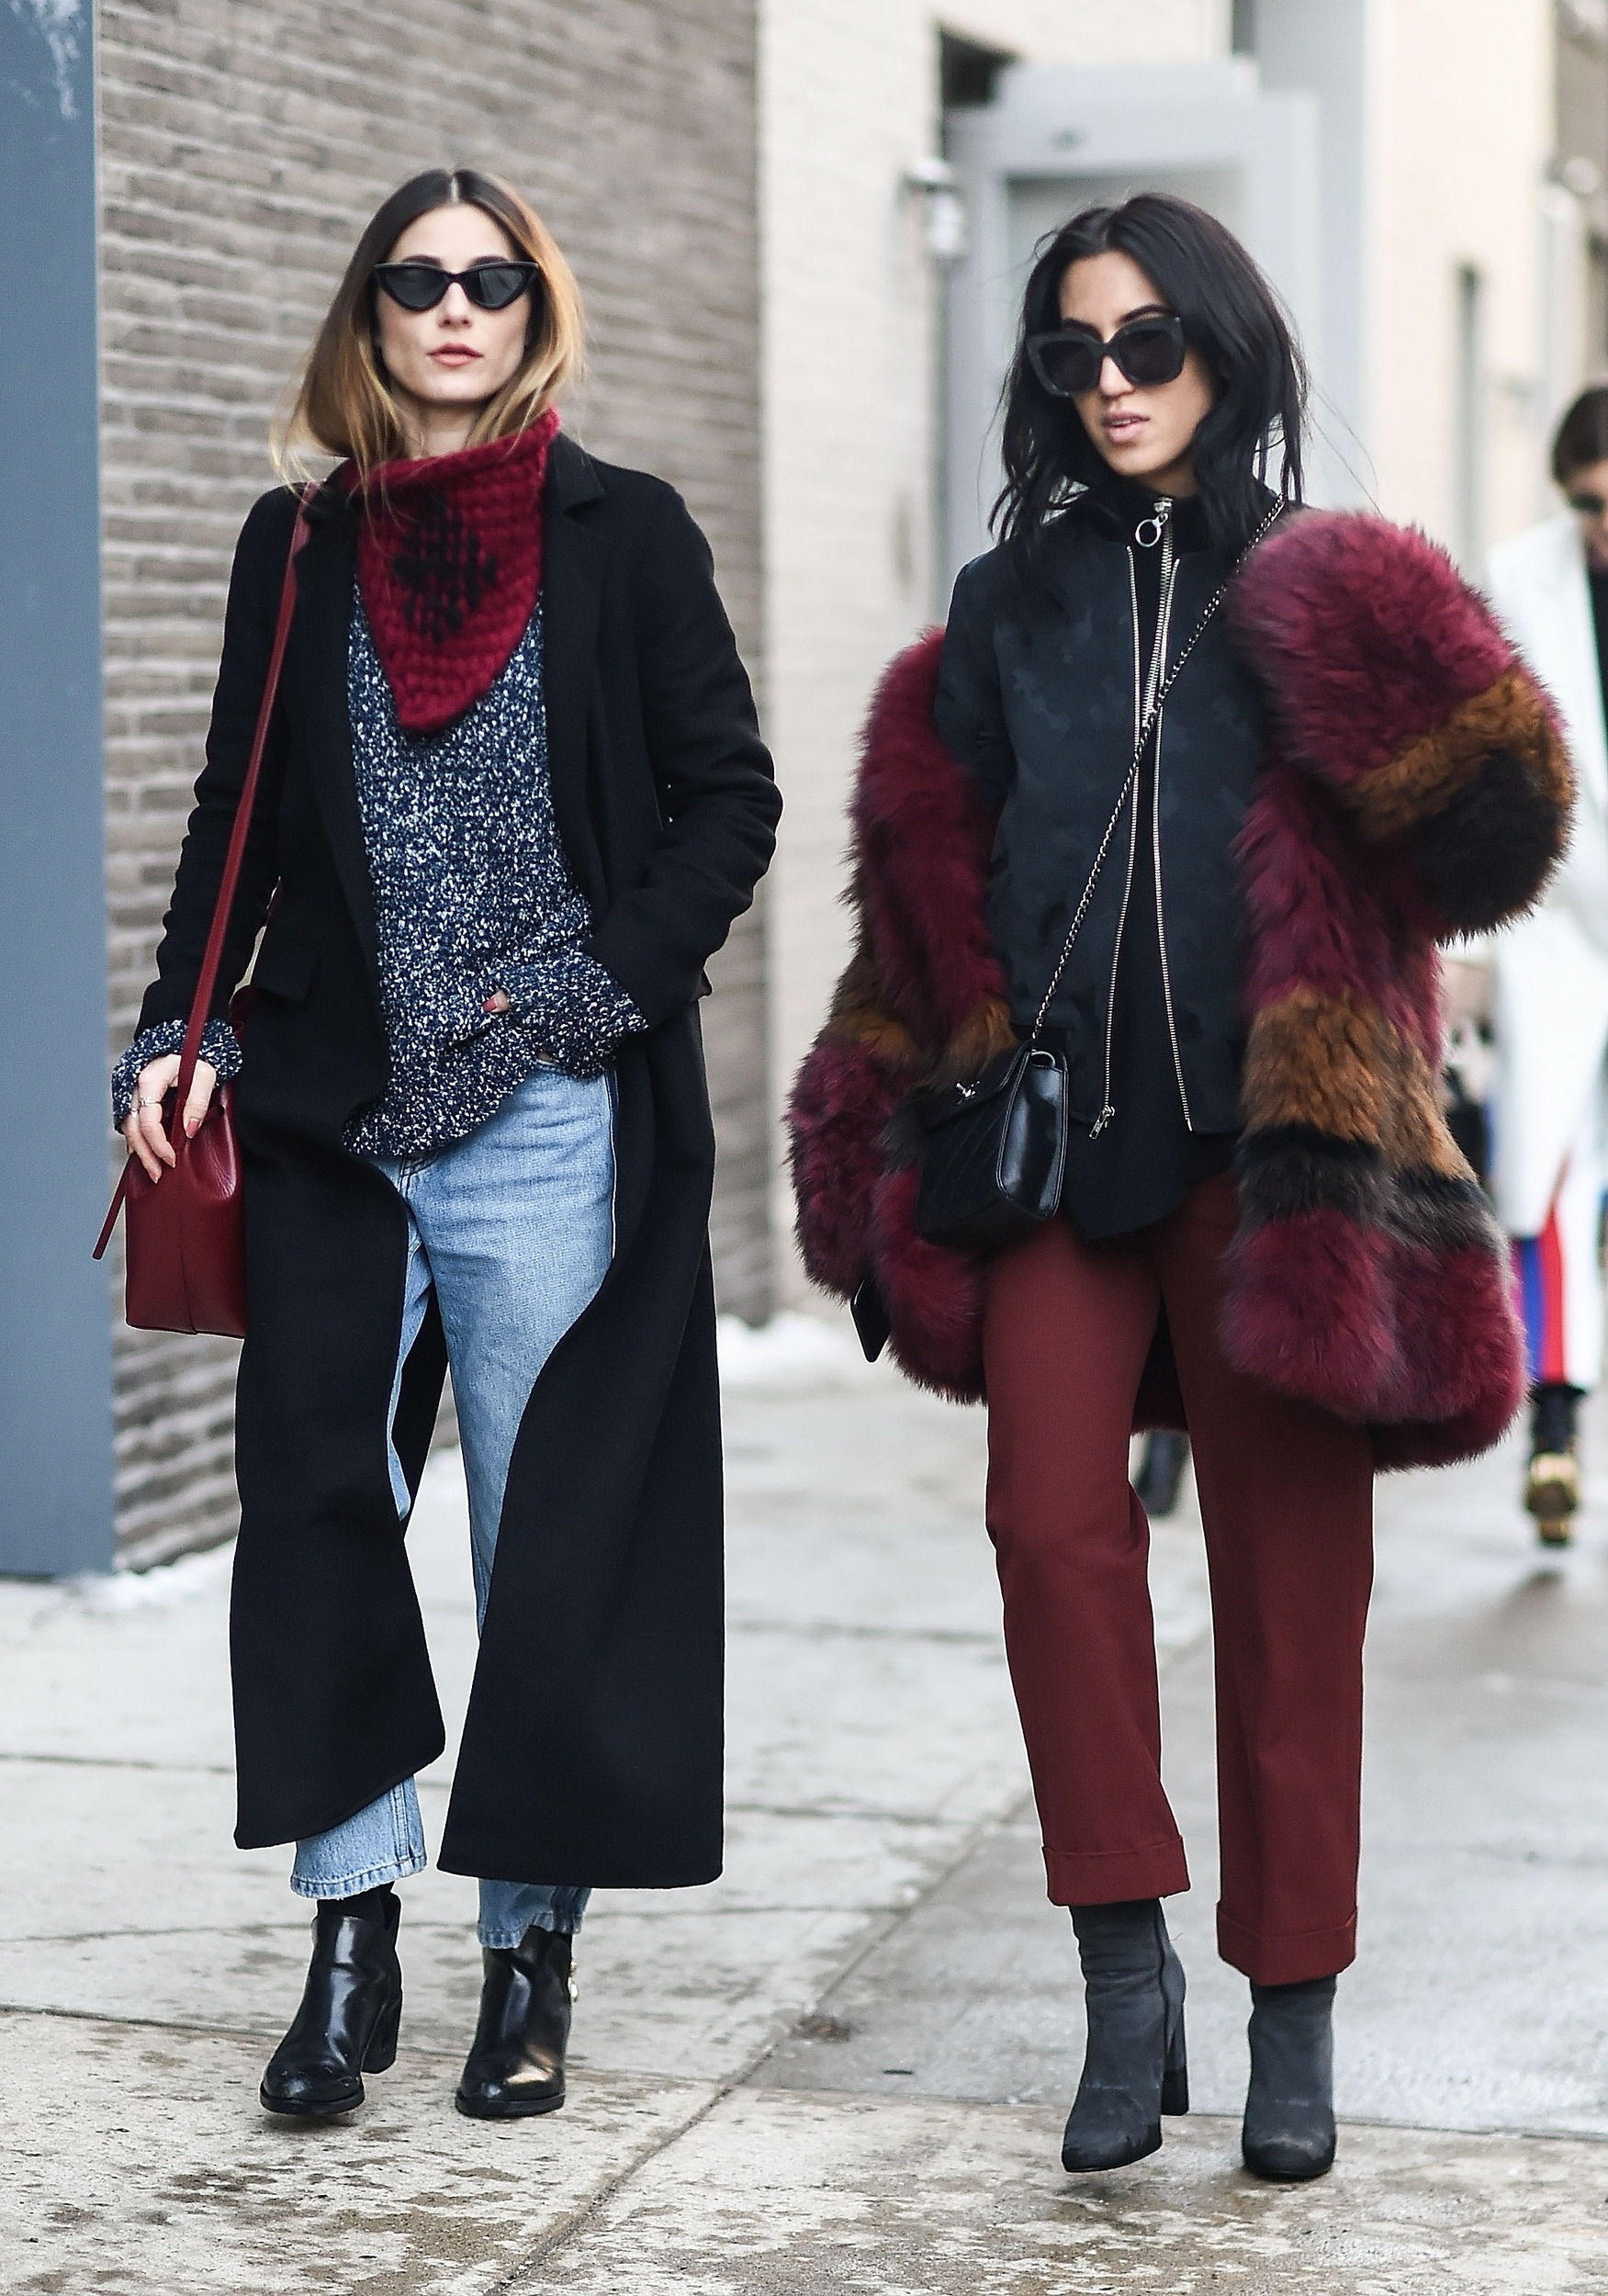 The best street style from Days 2 and 3 of New York Fashion Week